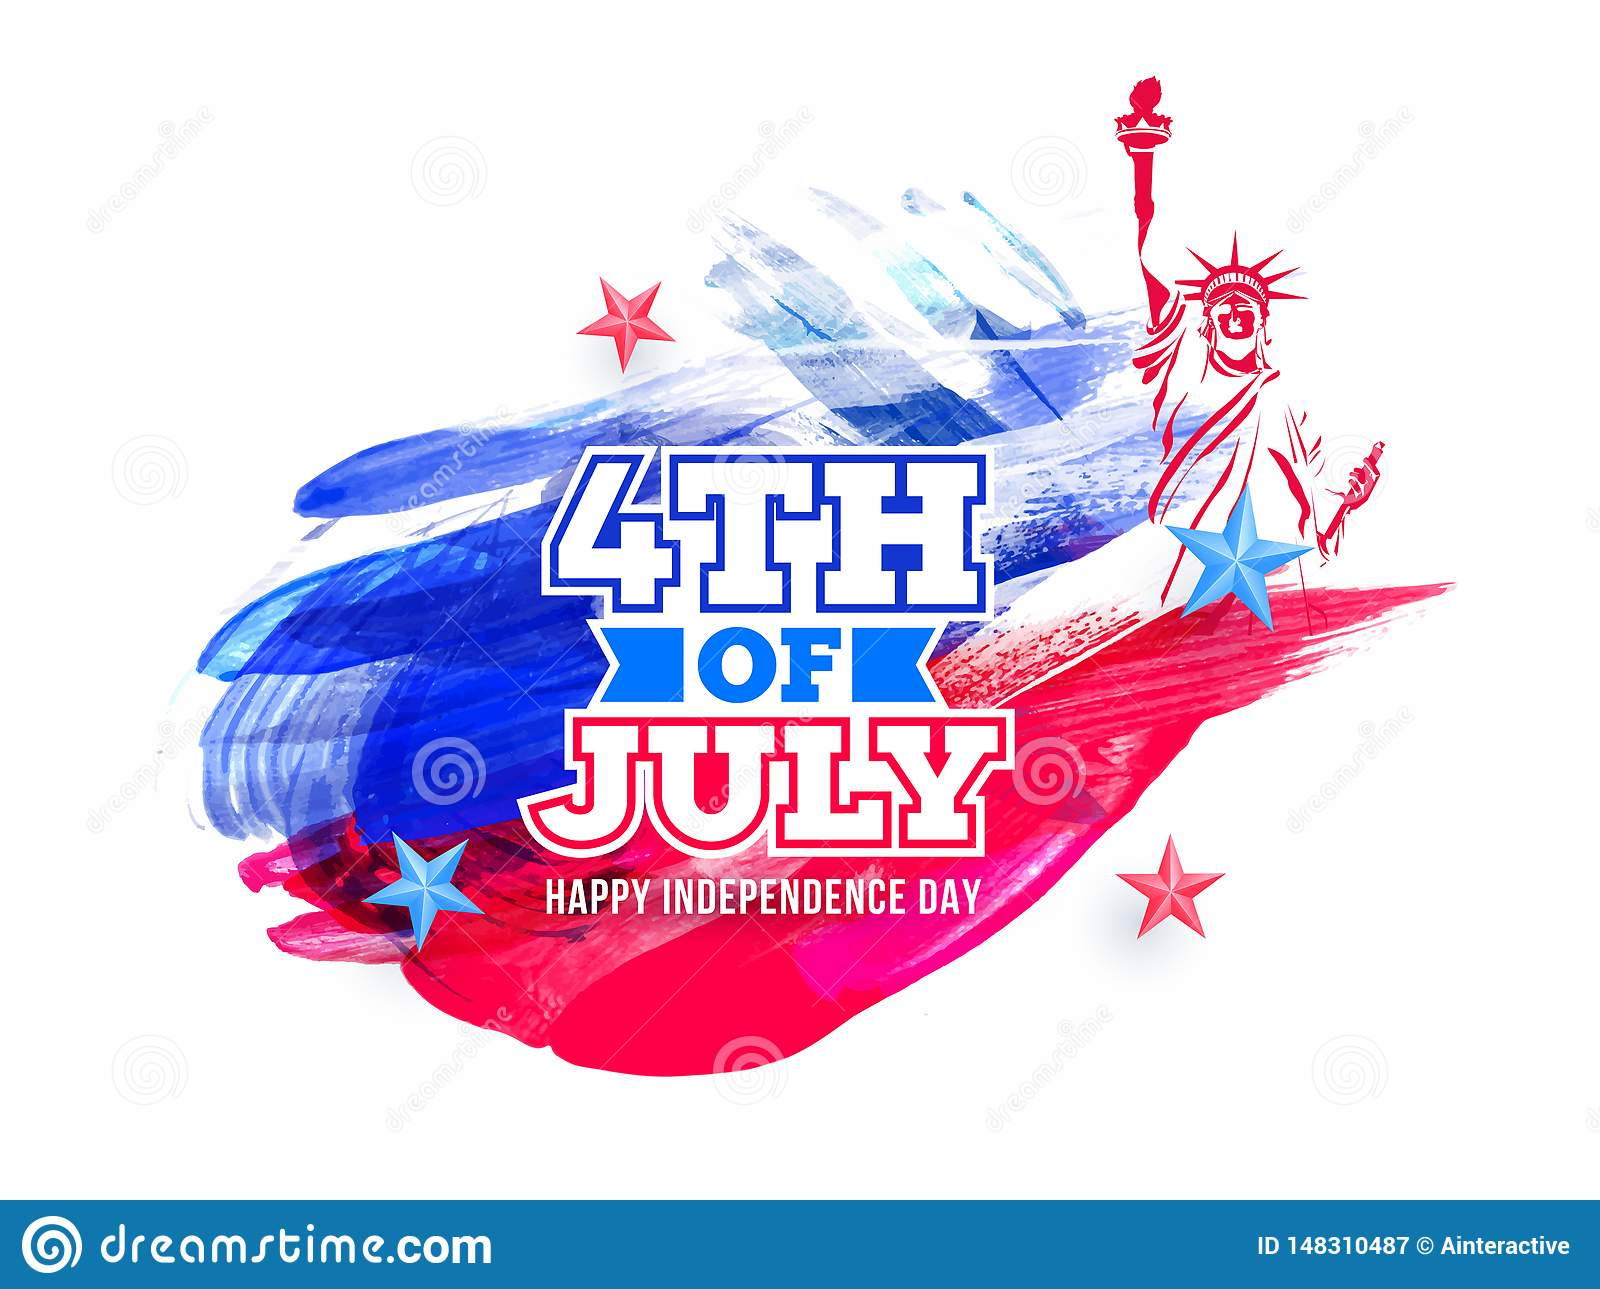 Sticker style text 4th Of July and Statue of liberty on brush stroke background for Happy Independence Day.